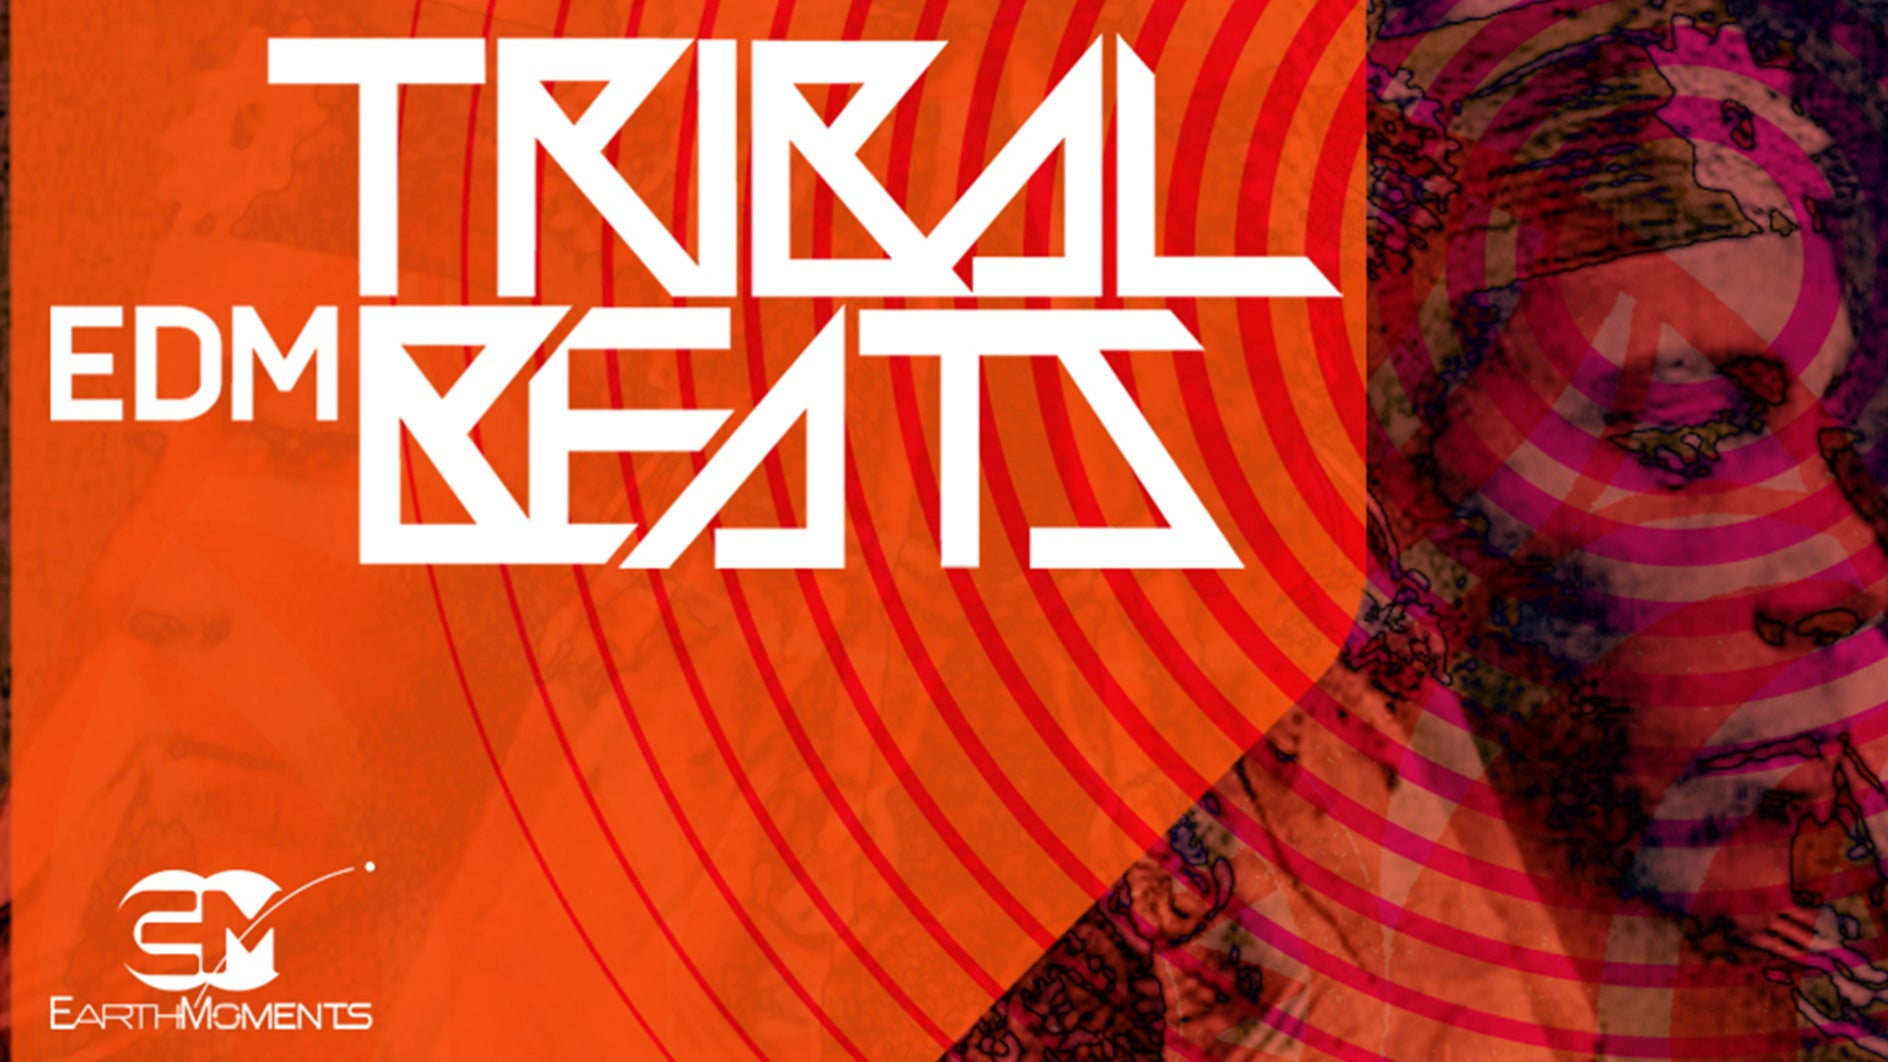 Tribal EDM Beats